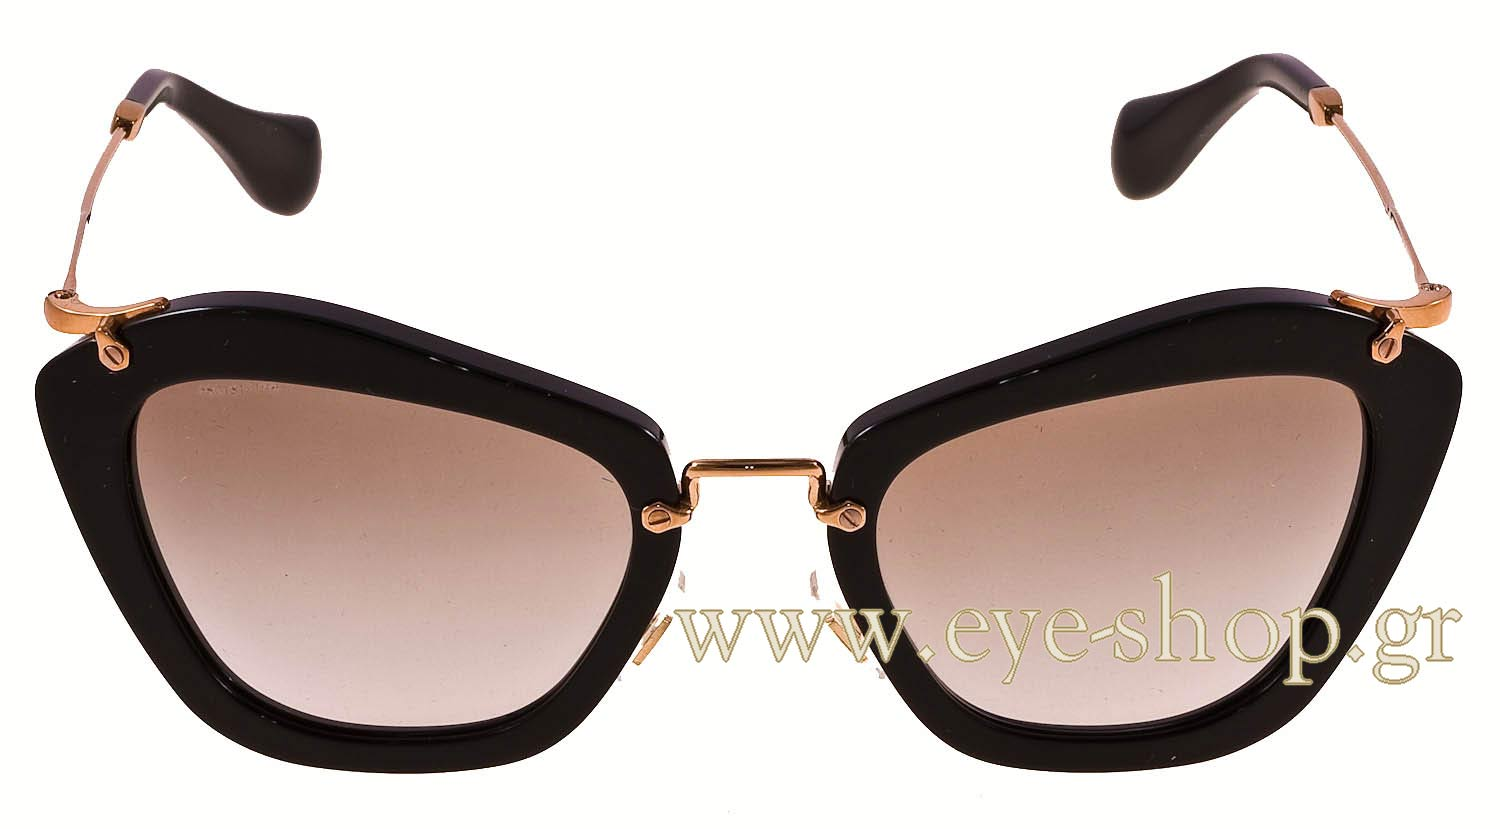 http://www.fulinglasses.cc/producer/1/syd/product_g/Cartier CA0680S-Gold Mix WHite (1).jpg